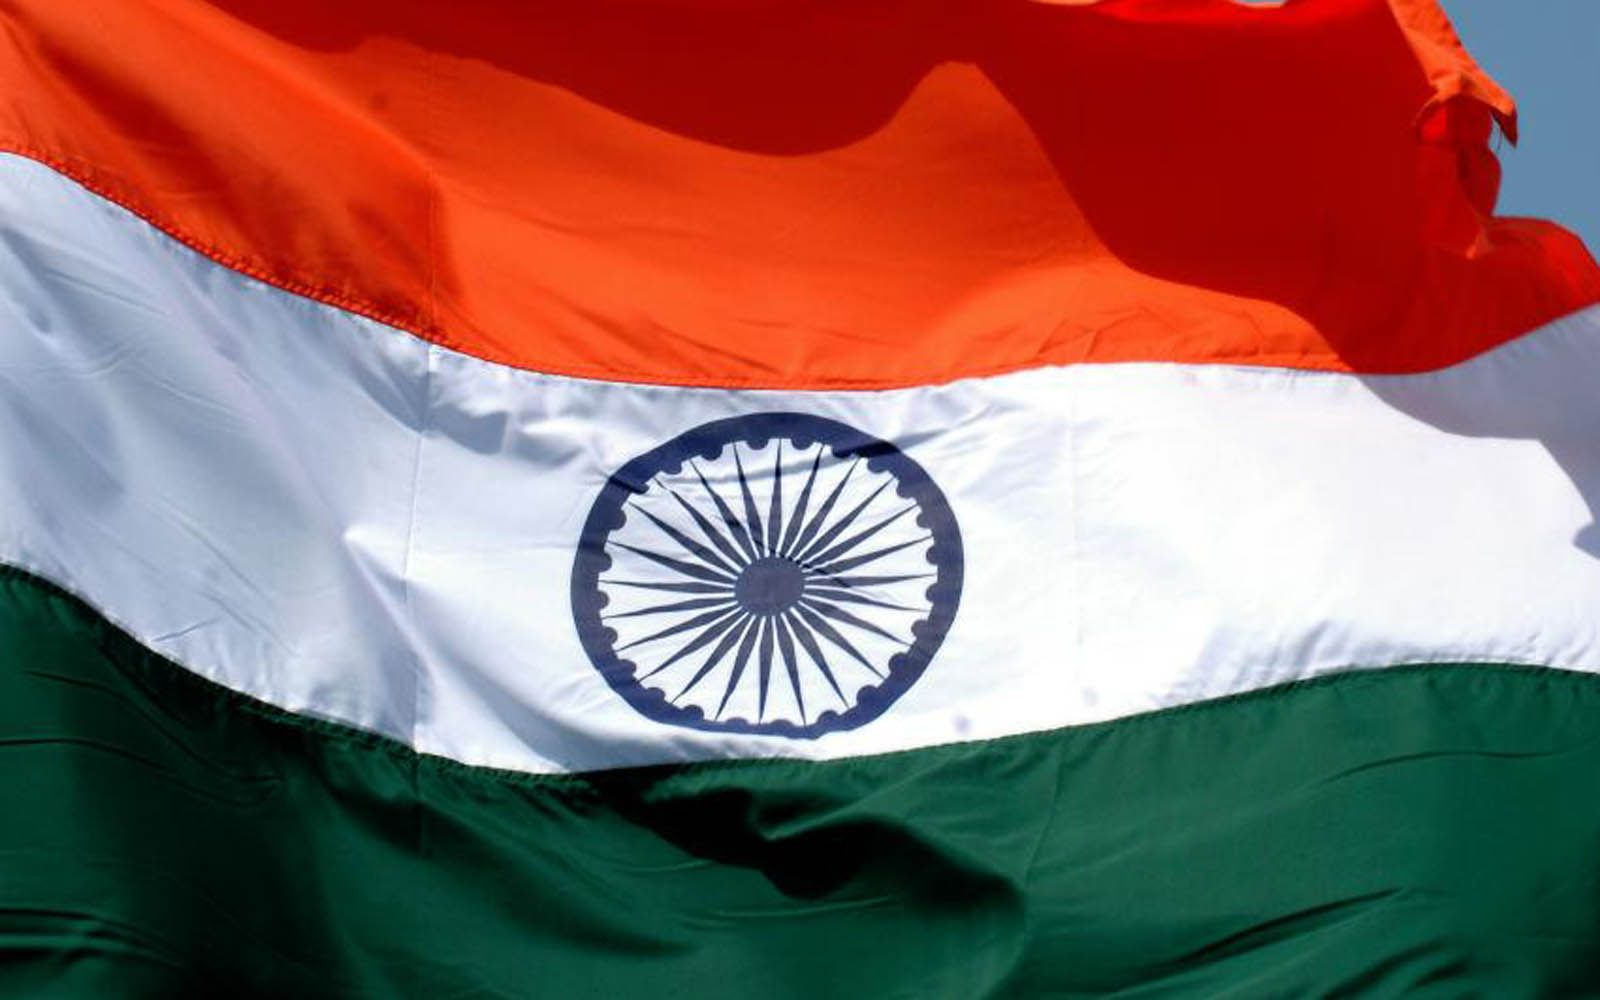 Indian Flag Wallpapers Hd Images 2018 Free Download Indian Flag Indian Flag Wallpaper Republic Day